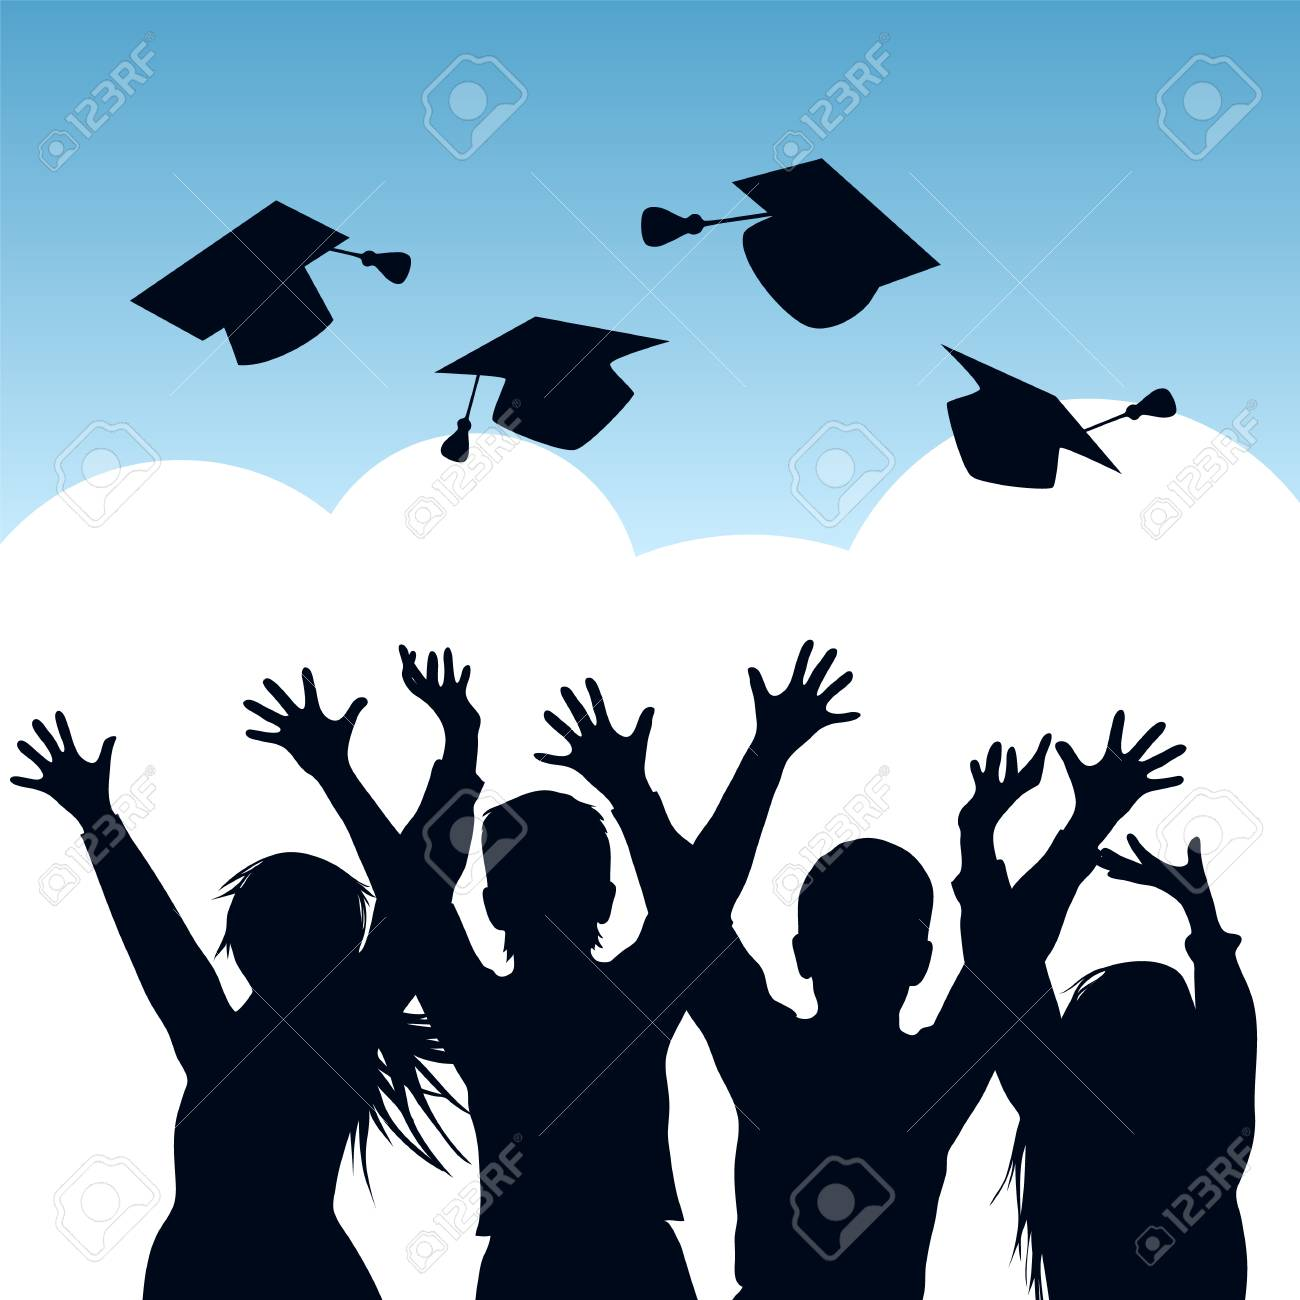 Happy students throwing graduation caps in the air. Silhouettes of graduates. Vector illustration - 100643296